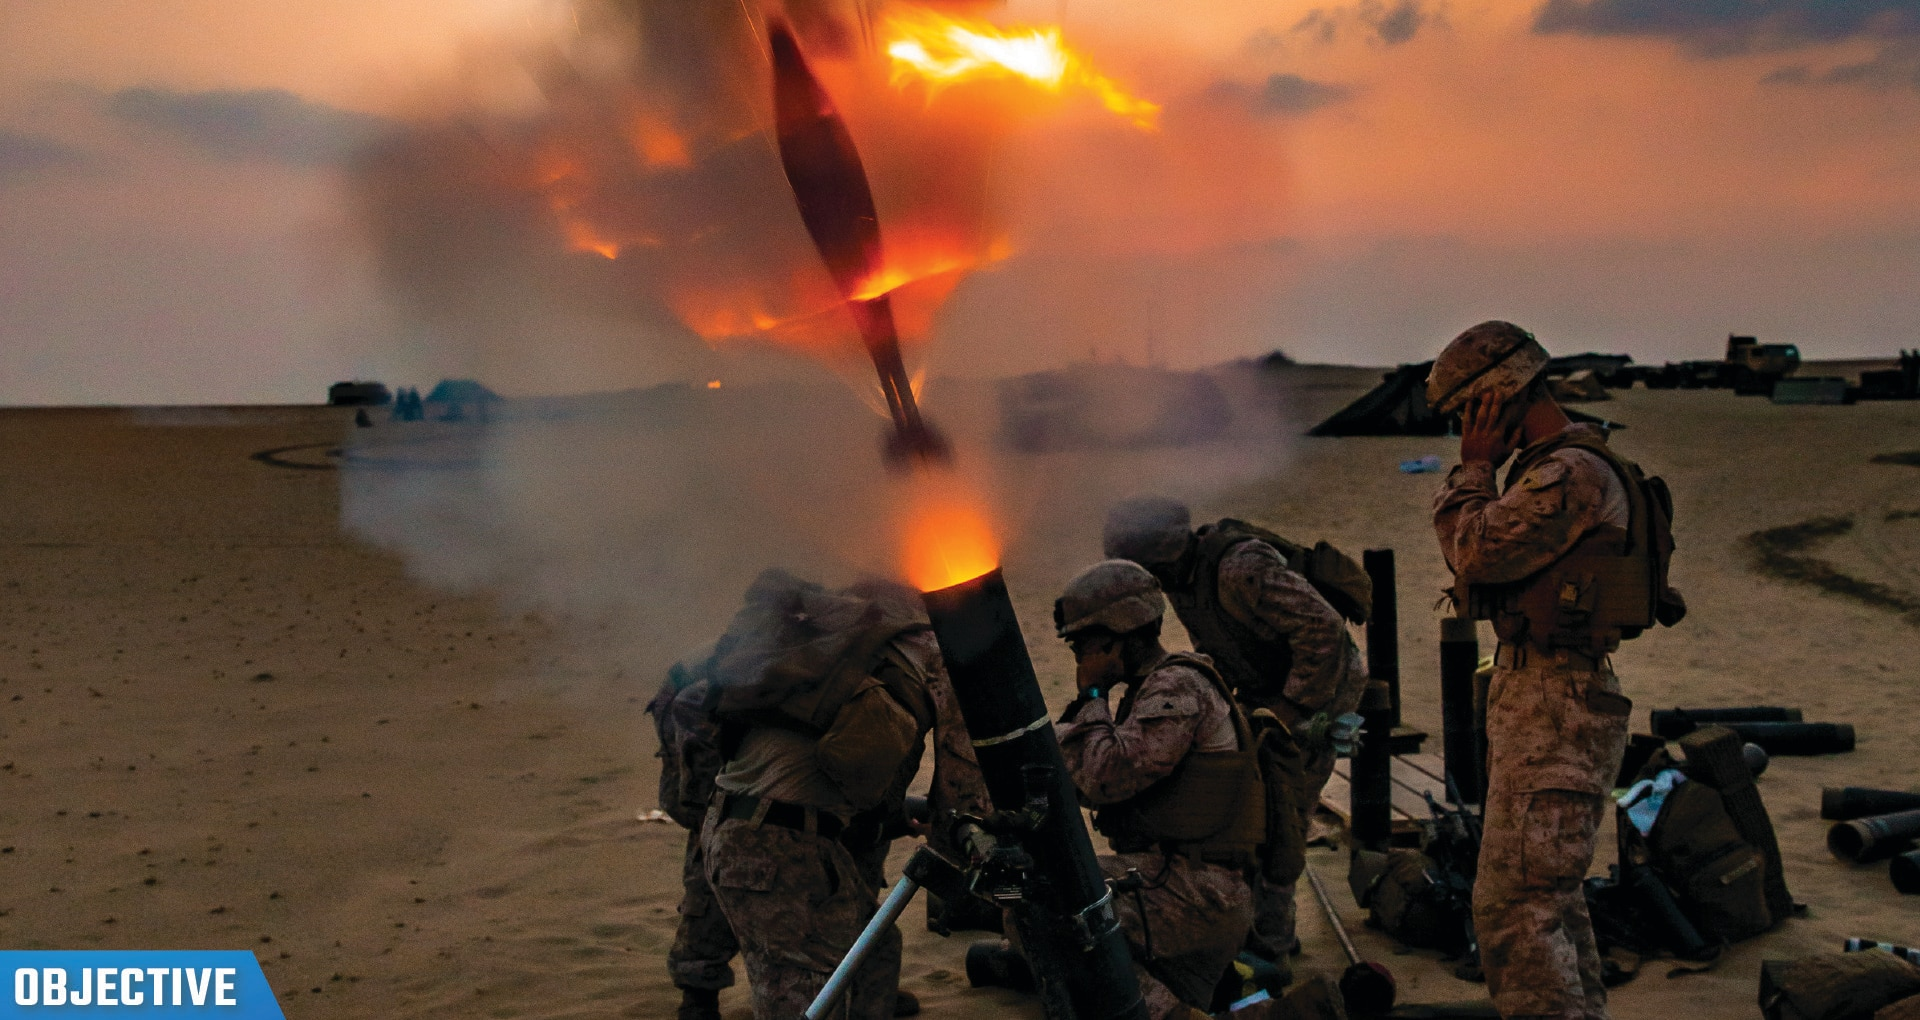 Marines fire a 120 mm mortar round during a live-fire training in Kuwait